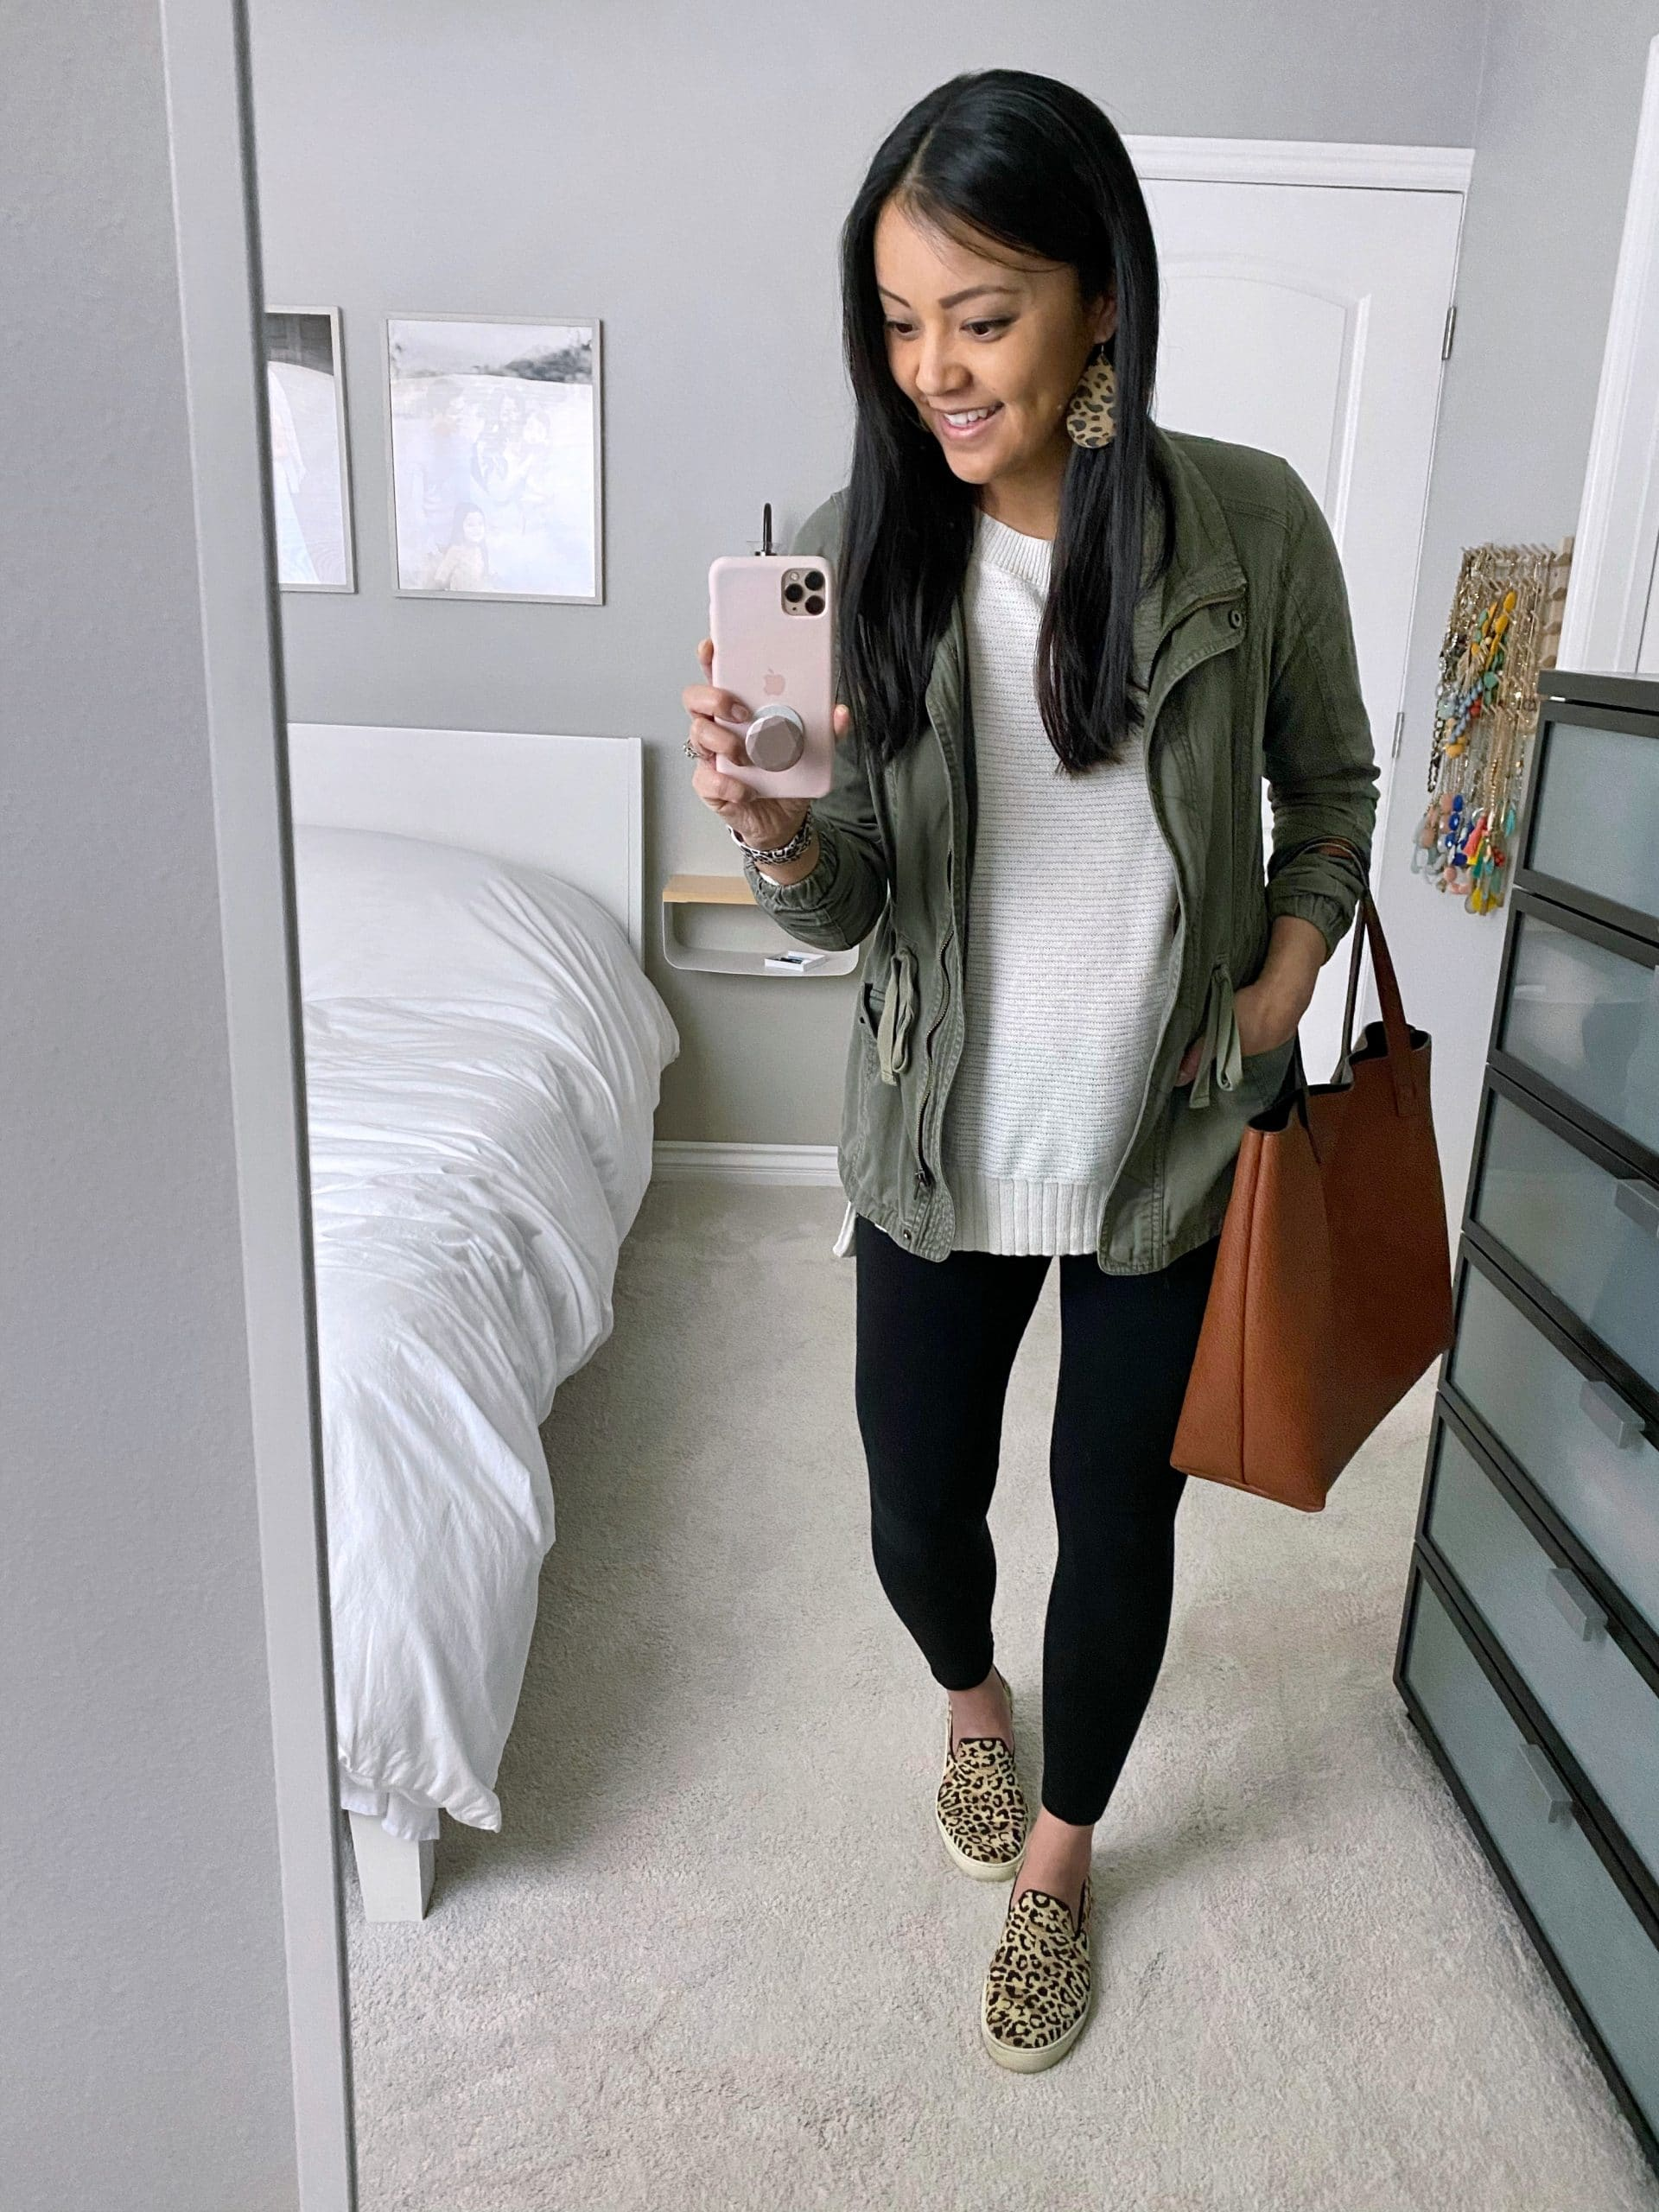 Casual Leggings Outfit To Wear At Home: oatmeal pullover sweater + black leggings + utility jacket + leopard slip-on sneakers + cognac tote + leopard leather earrings